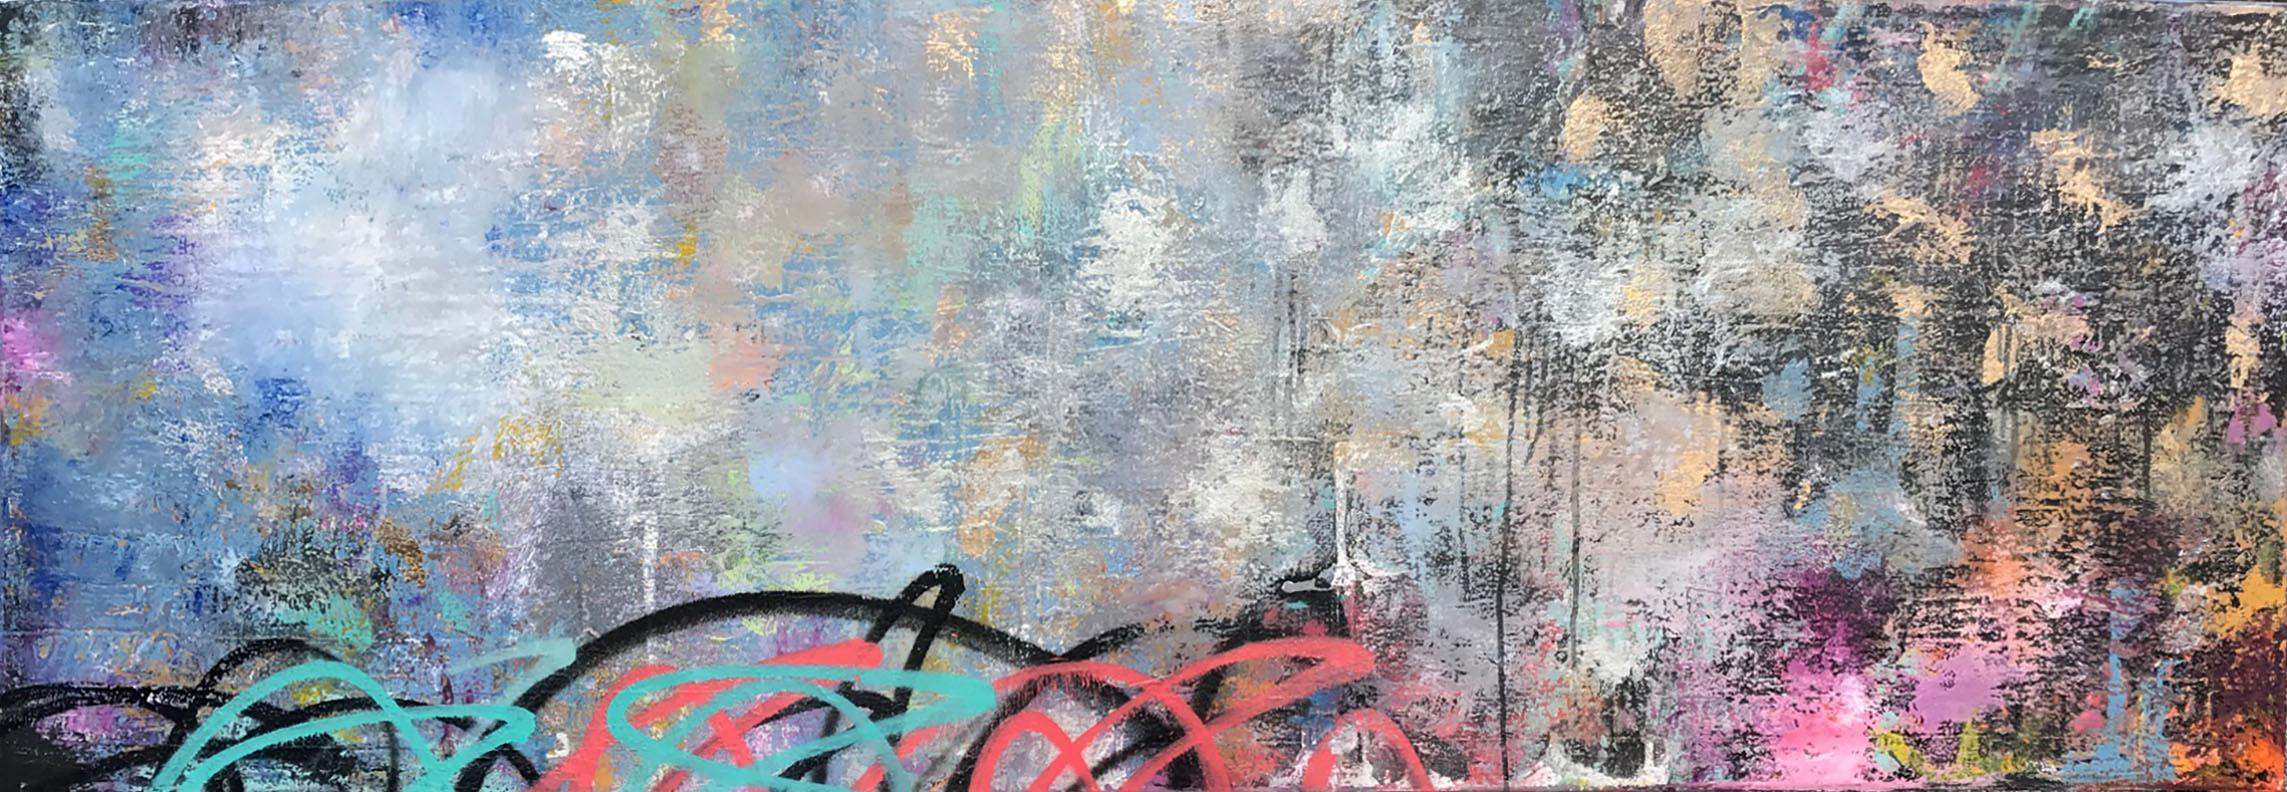 Tragedy & Triumph, 2017, Acrylic, Oil, Spray Paint on Canvas, Signed on Verso